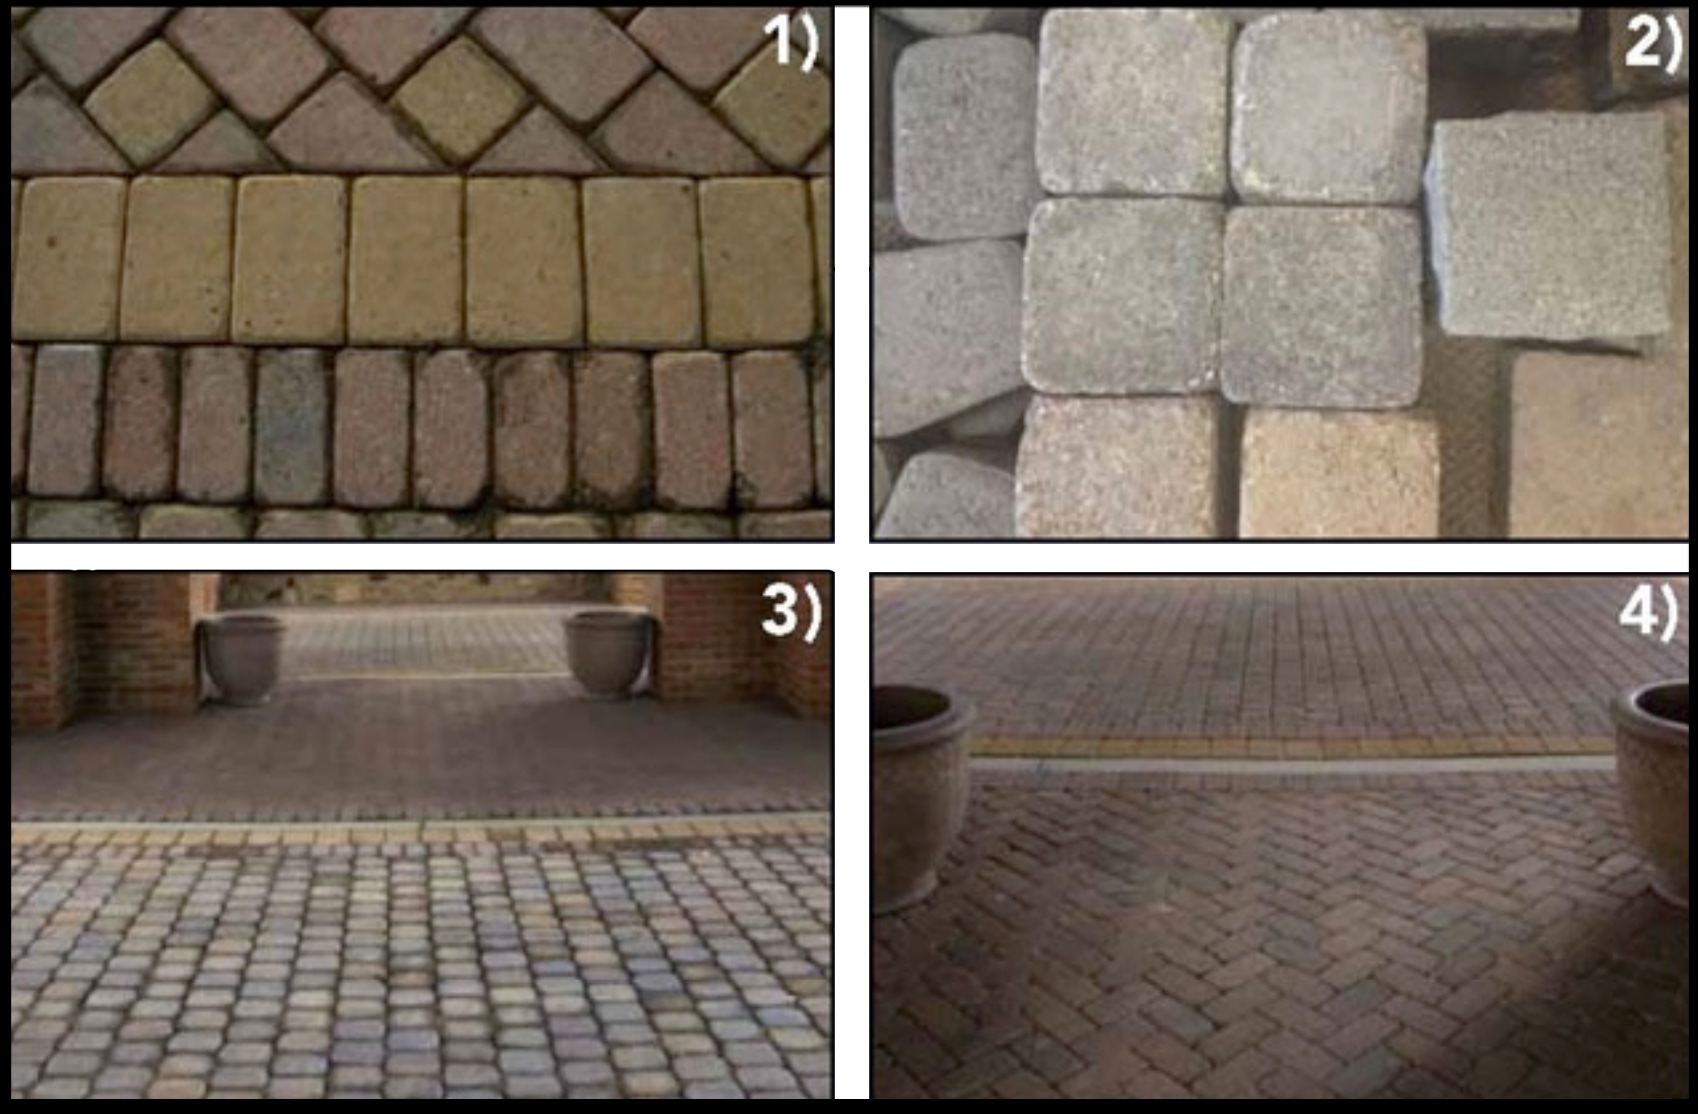 In old world design, DO get creative with concrete. (1) Red and yellow pavers mimic Spanish tile. (2&3) Mimic granite cobble by using tumbled concrete without a chamfer or by using pavers installed upside down. (4) Tumbled concrete pavers mimic brick in traditional herringbone pattern.